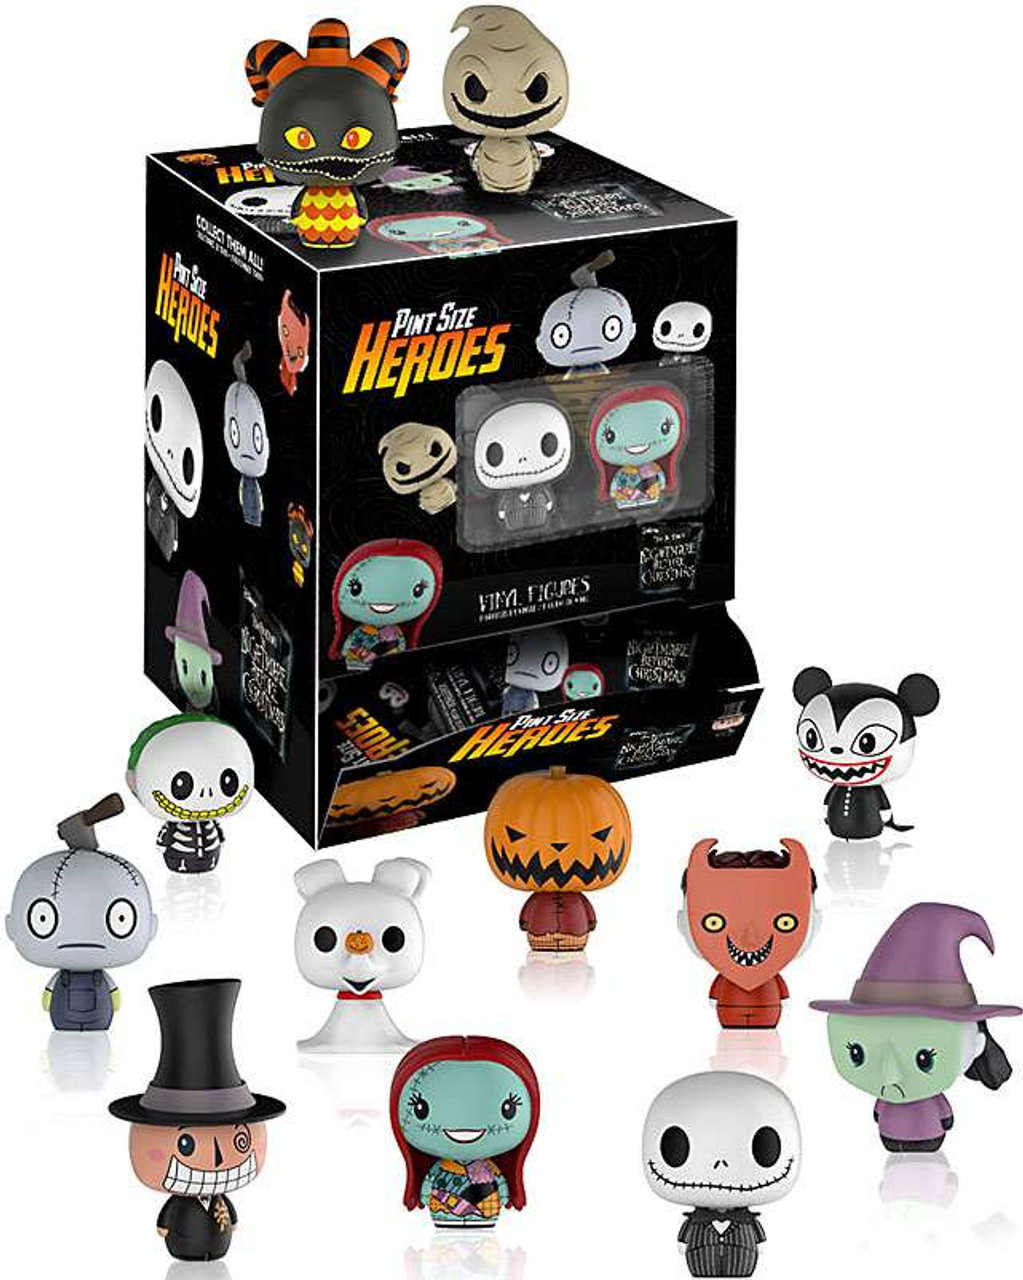 Funko Disney Pint Size Heroes Nightmare Before Christmas Mystery Box [24 Packs]